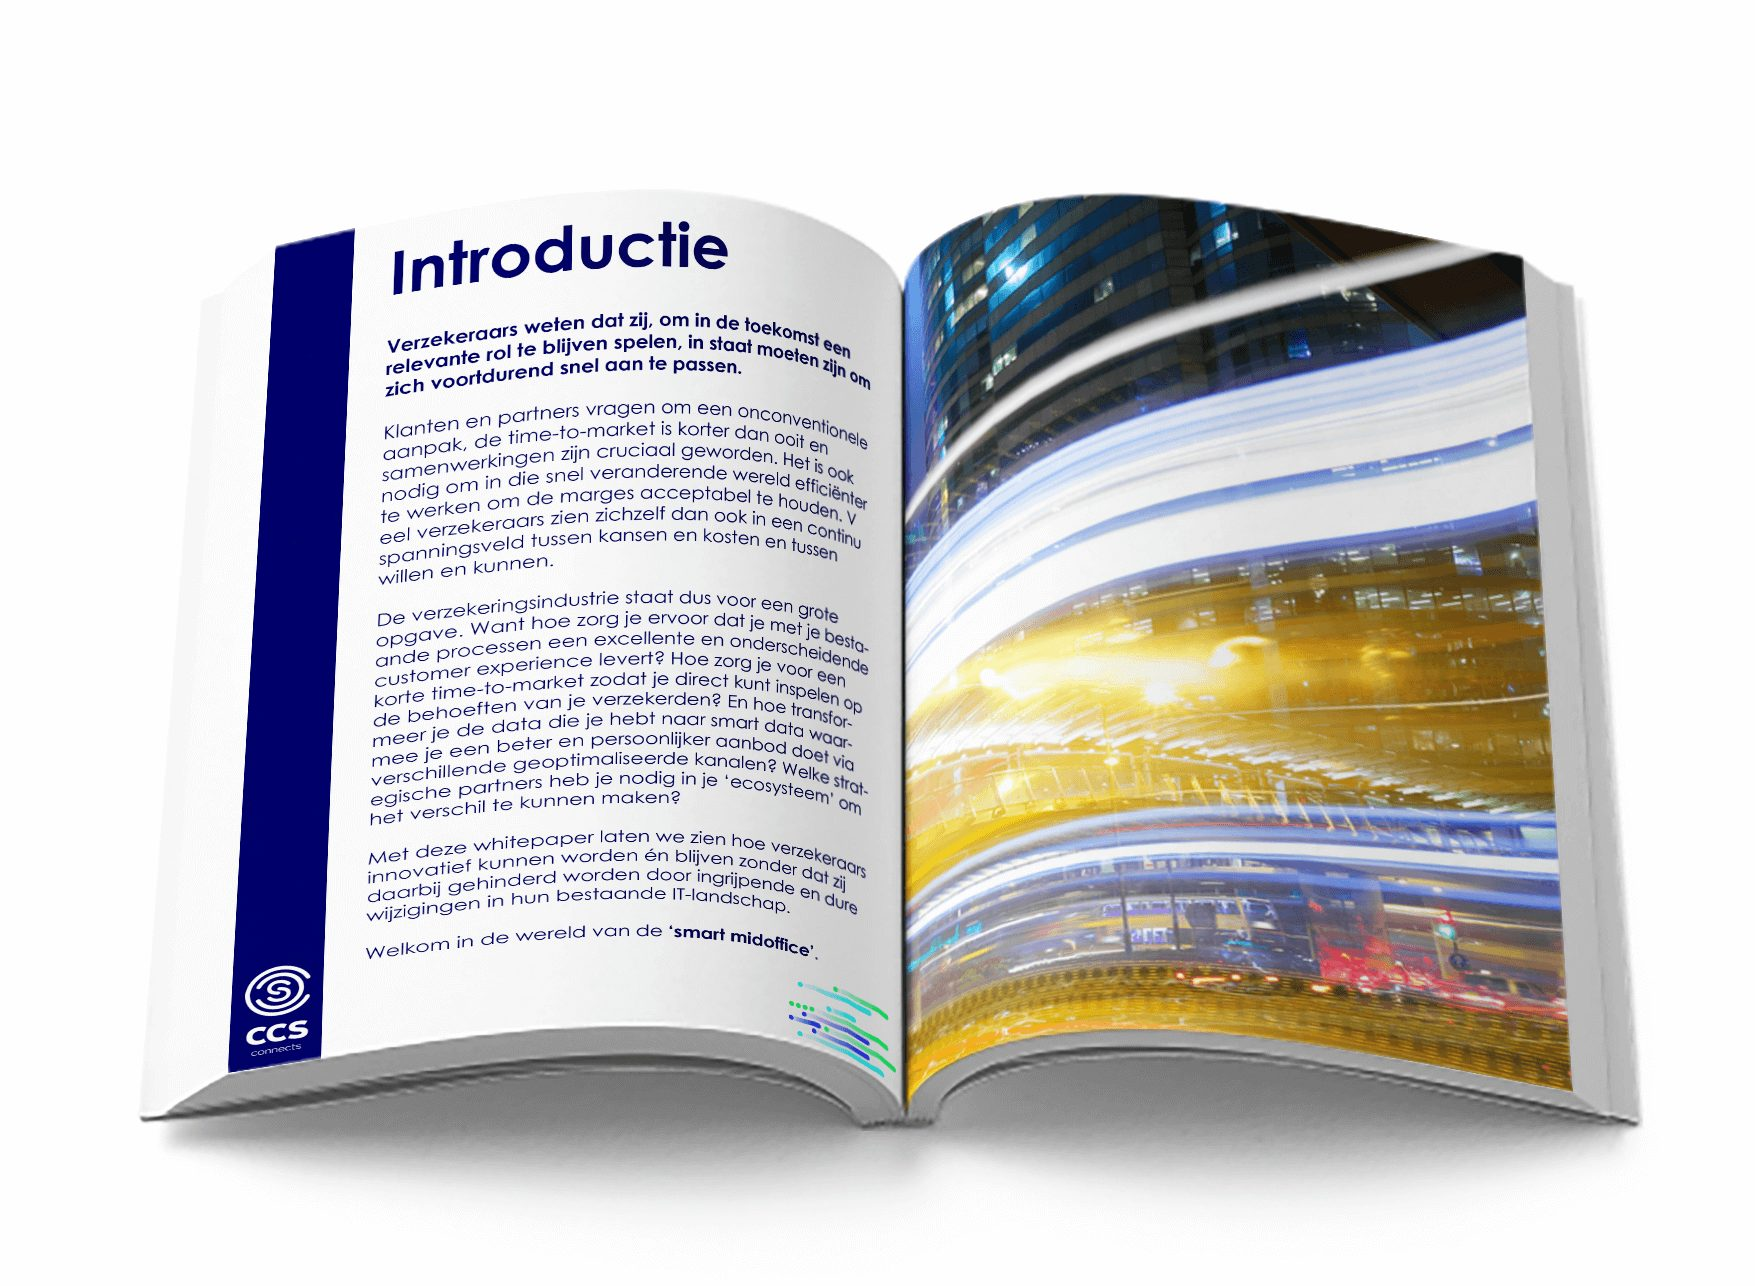 Smart midoffice whitepaper Roundcube